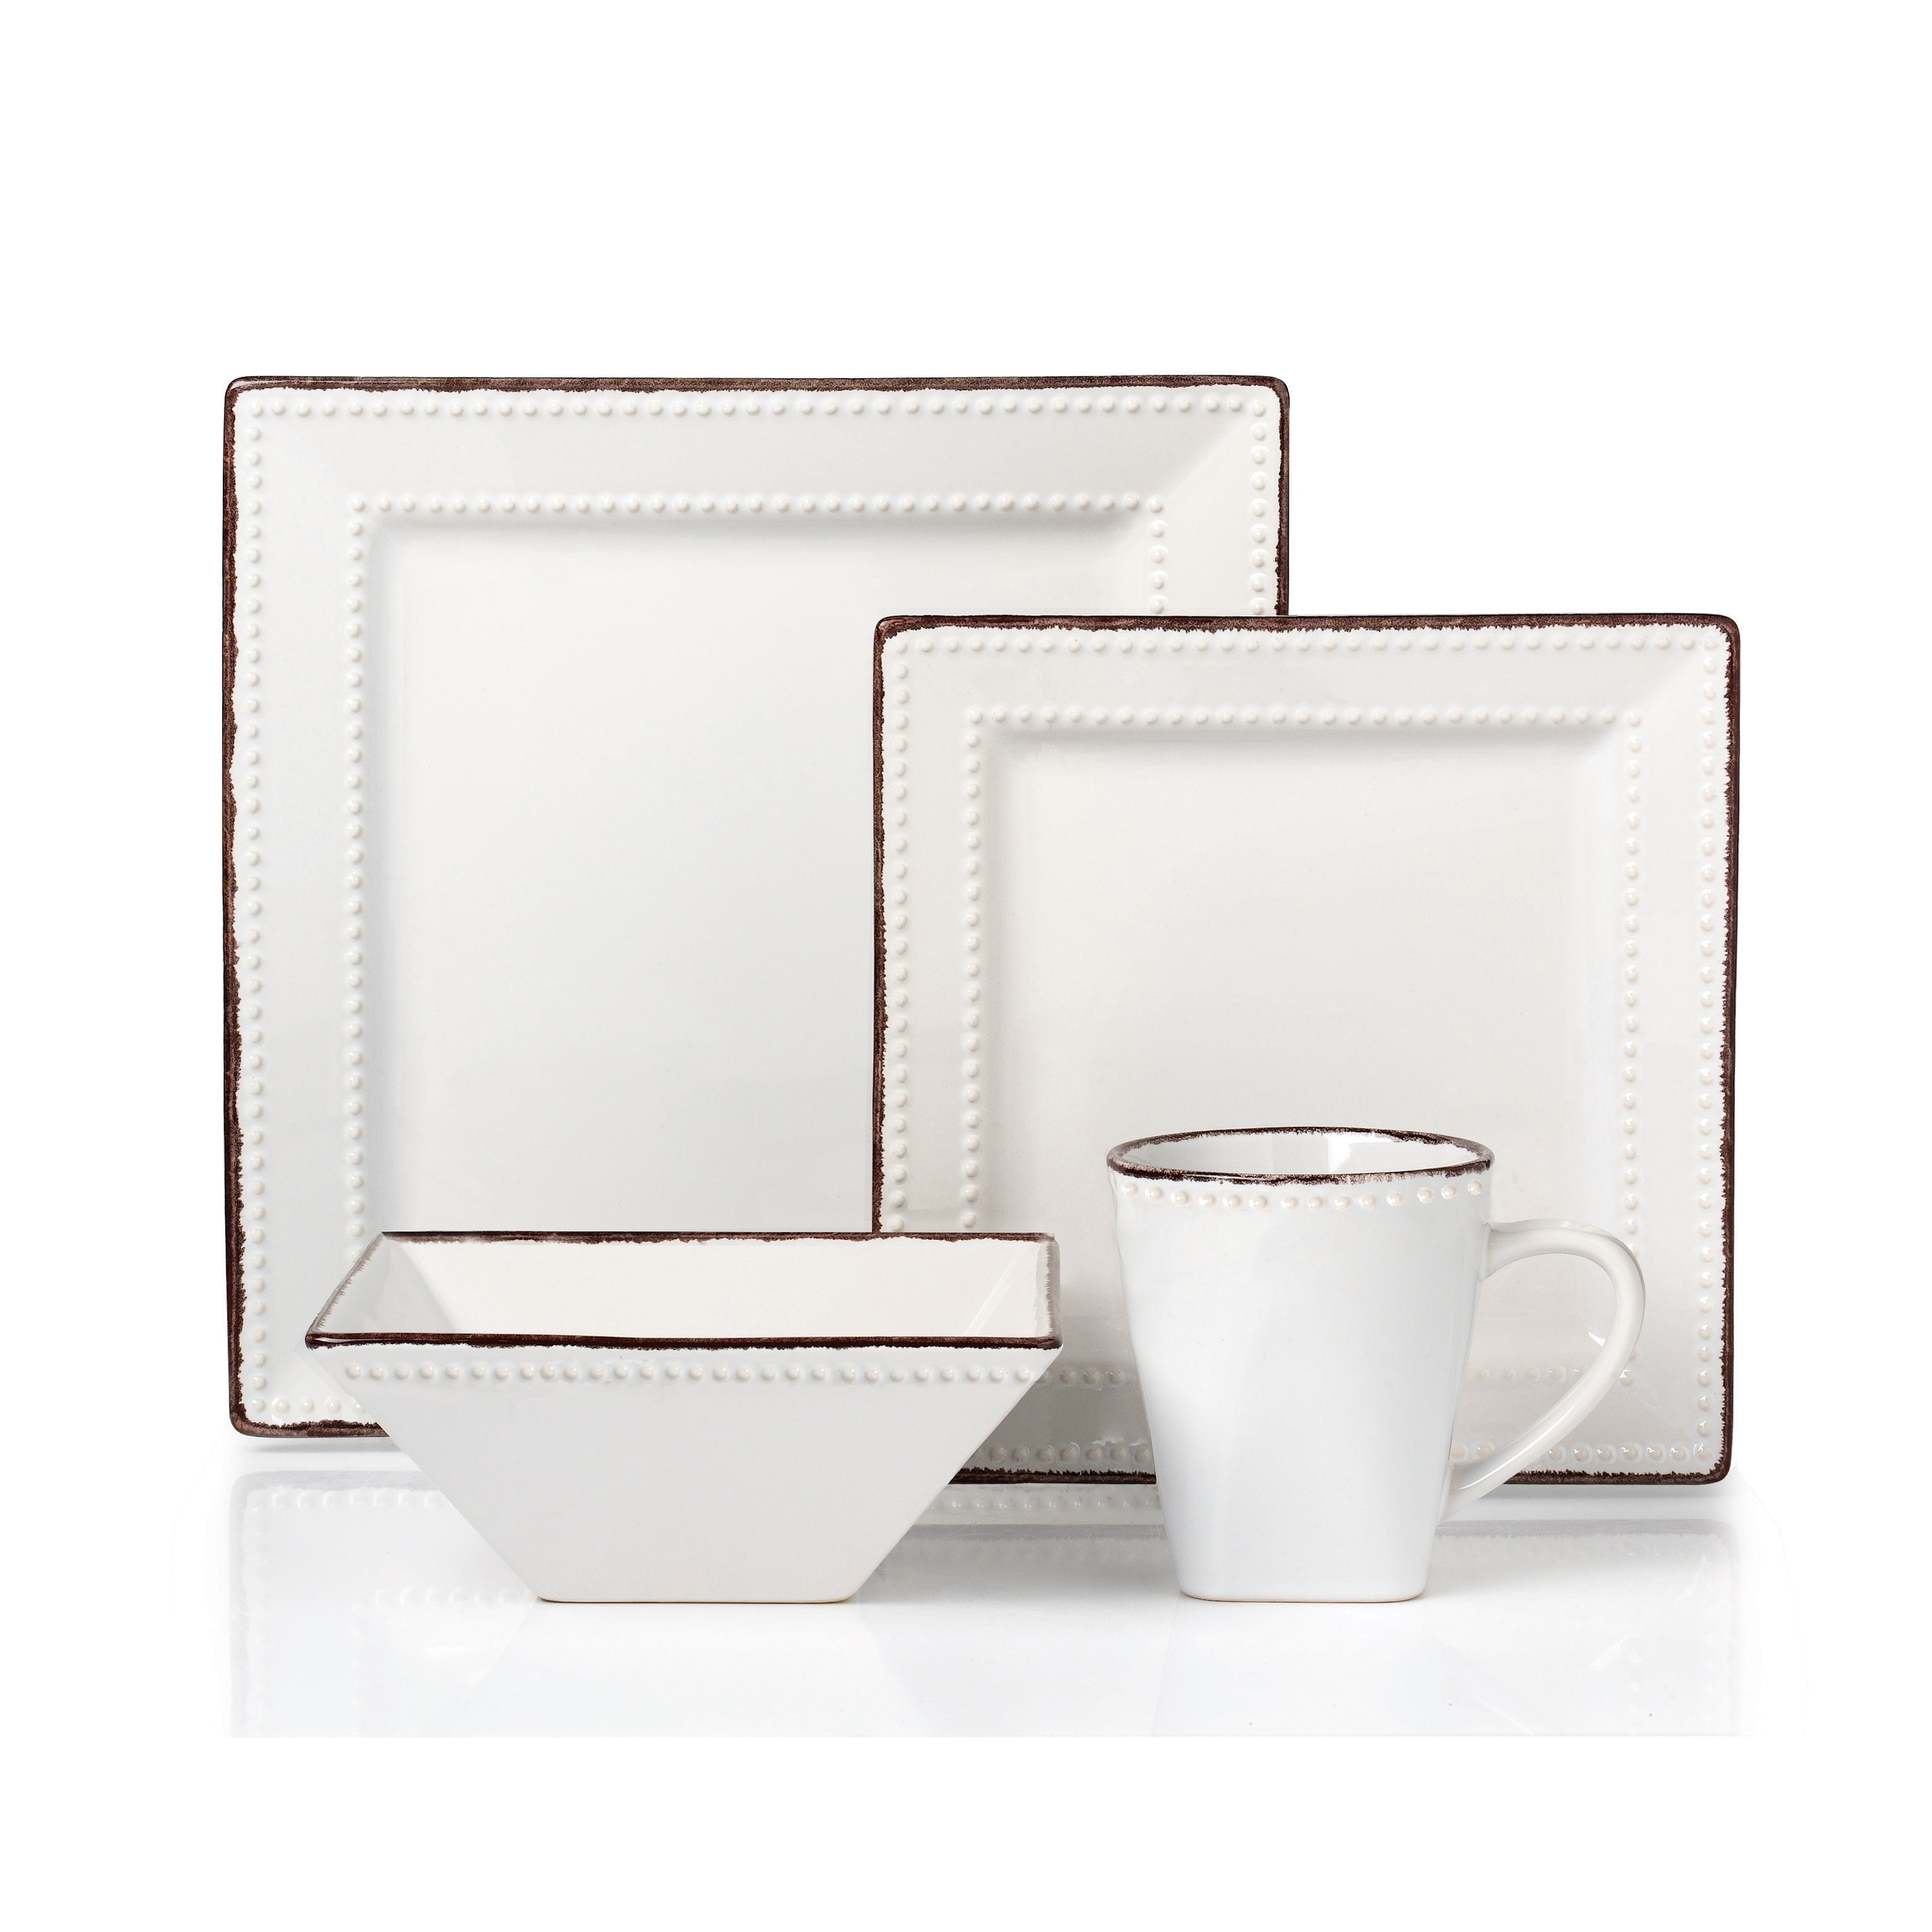 Shop 16 Piece Beaded Stoneware Dinnerware set by Lorren Home Trends White - On Sale - Free Shipping Today - Overstock.com - 18612822  sc 1 st  Overstock & Shop 16 Piece Beaded Stoneware Dinnerware set by Lorren Home Trends ...